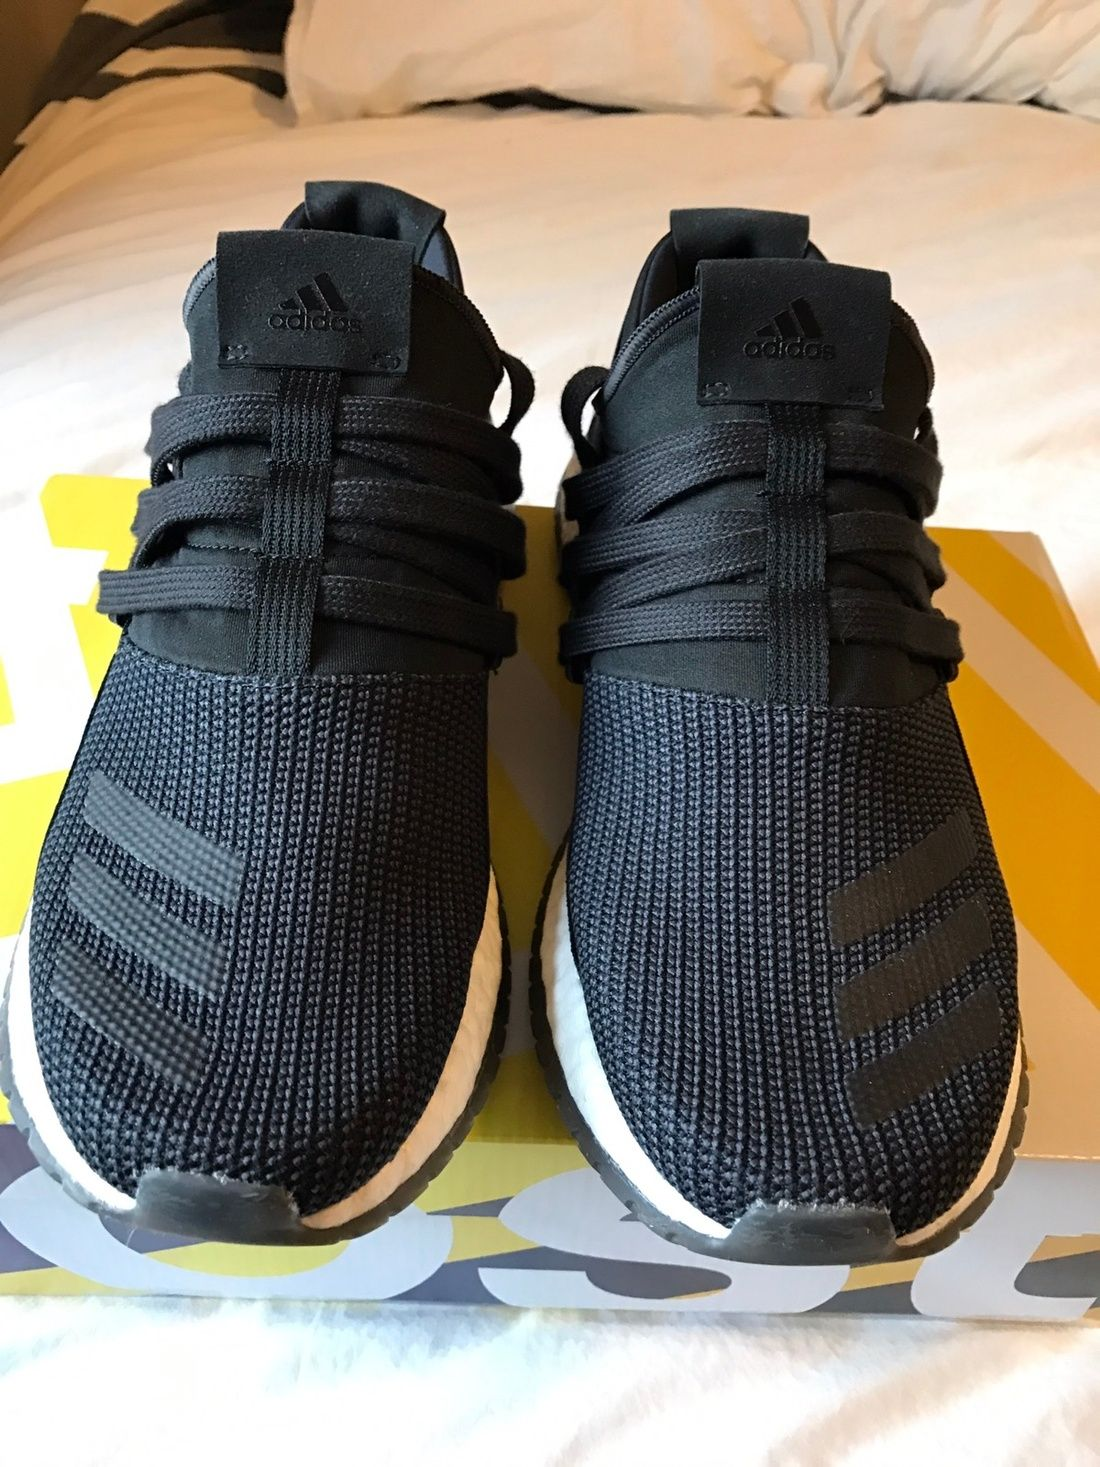 60cbc6276 ... discount code for adidas pure boost raw size 12 200 grailed 1fae7 0d49e